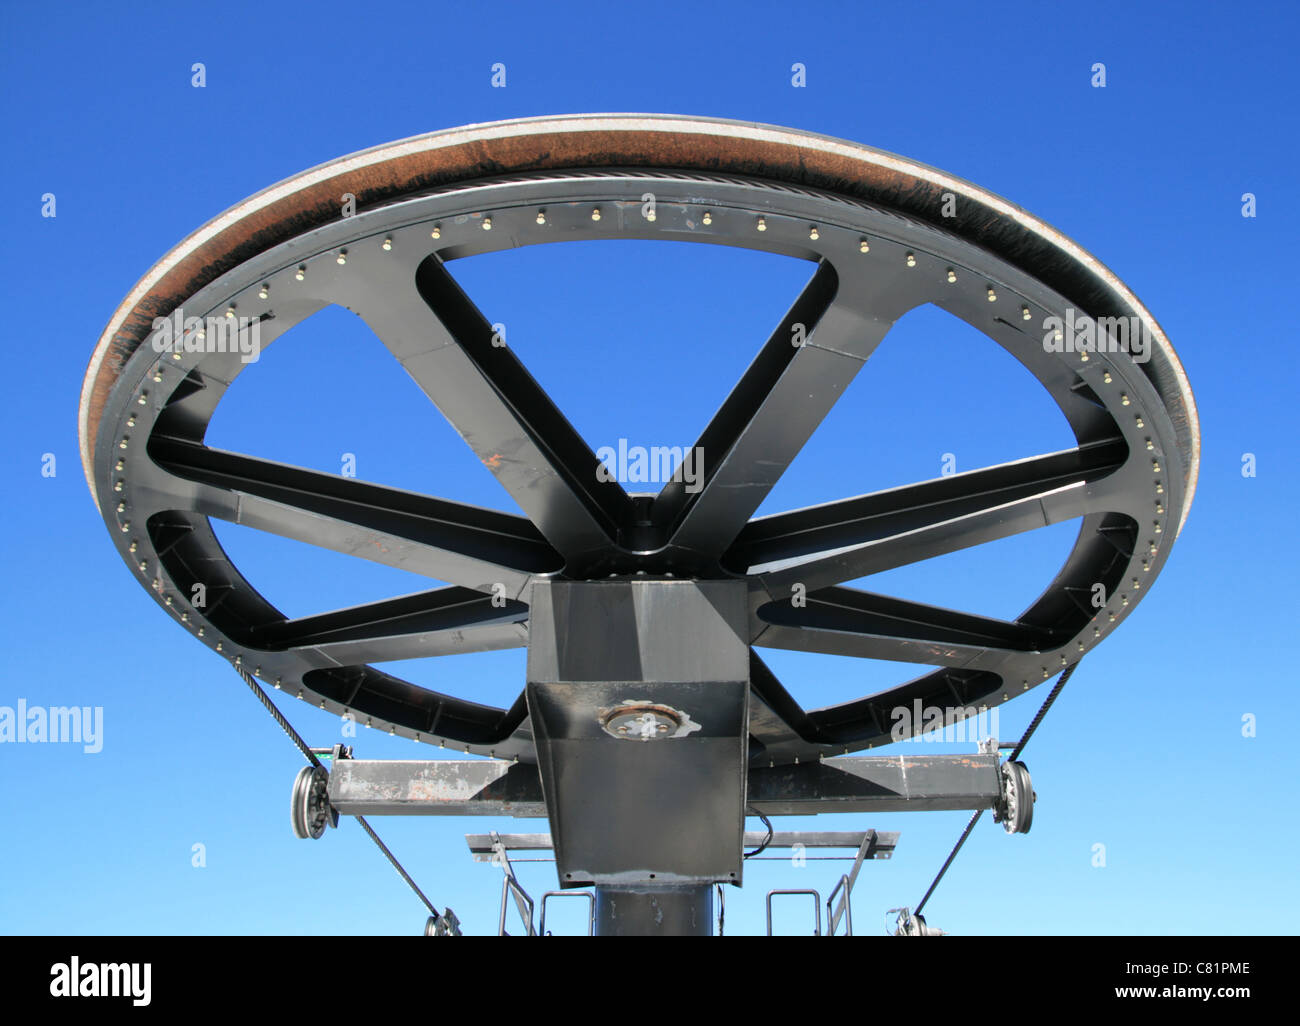 giant pulley wheel from the top of a ski lift with a blue